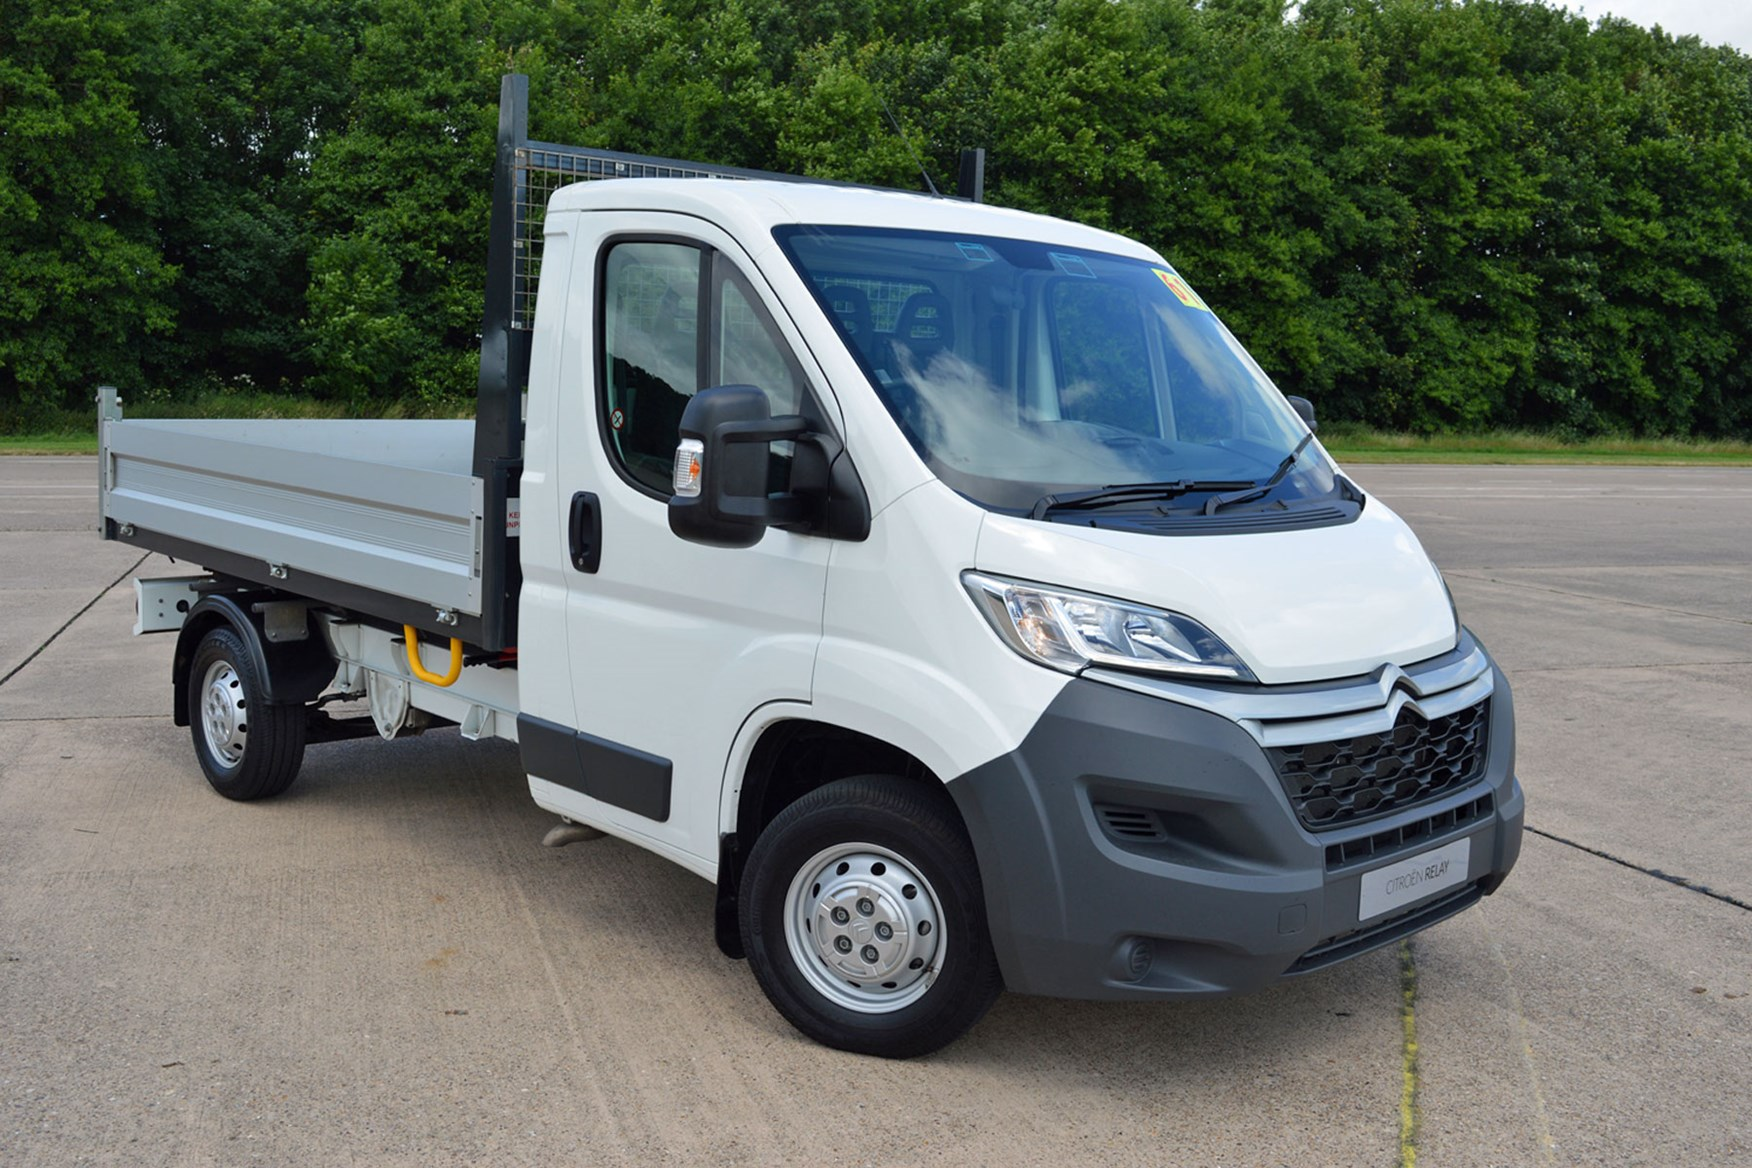 Citroen Relay 2.2 HDi Tipper review - front view, white